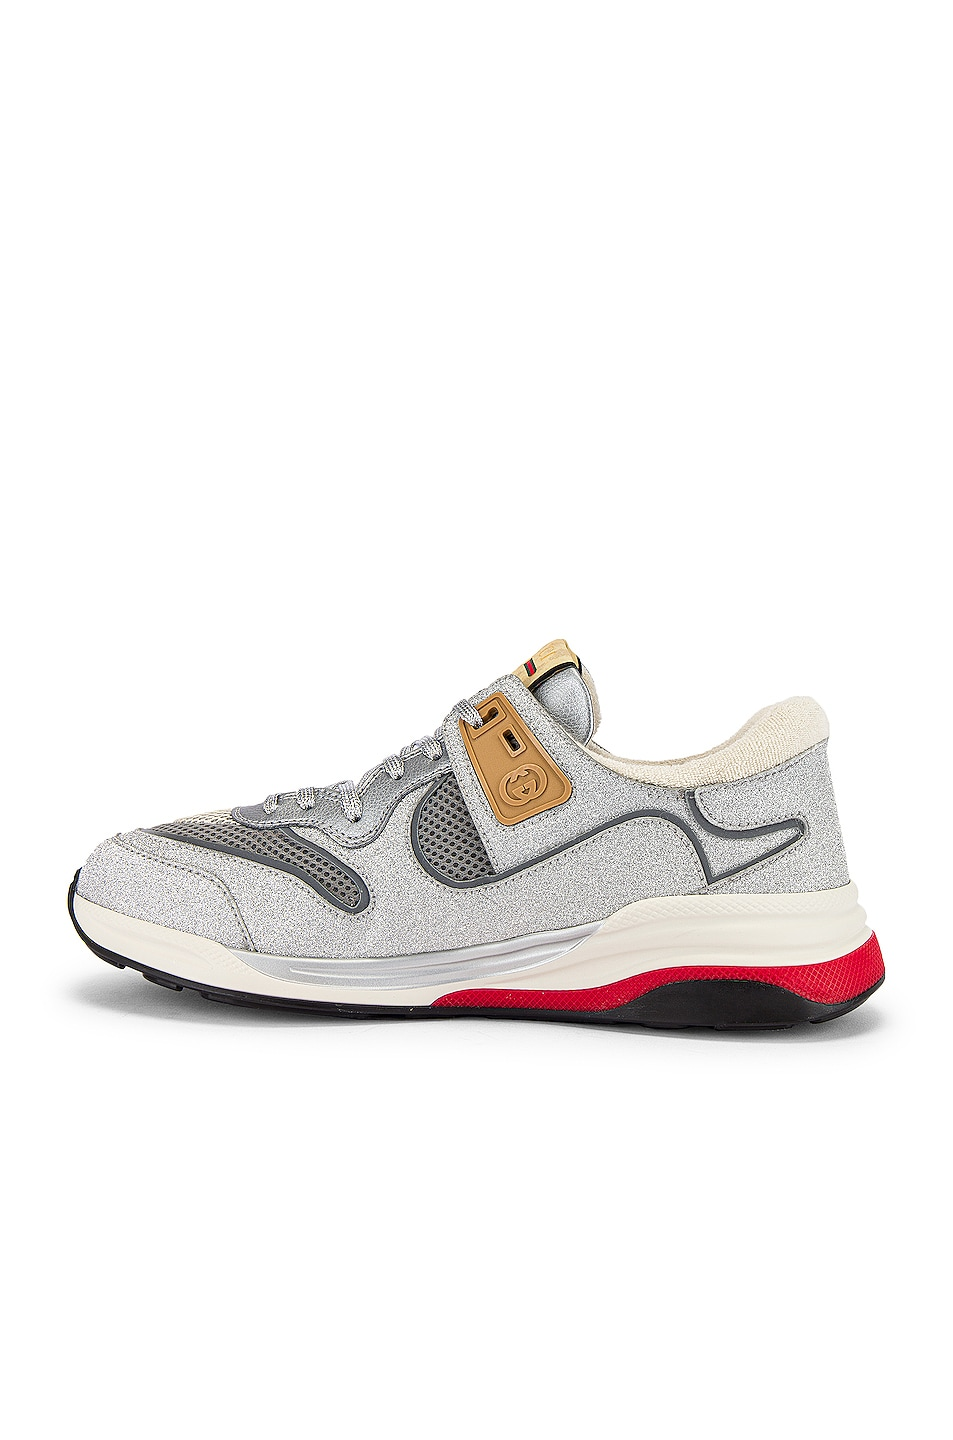 Image 5 of Gucci G Line Low Top Sneaker in Silver & White